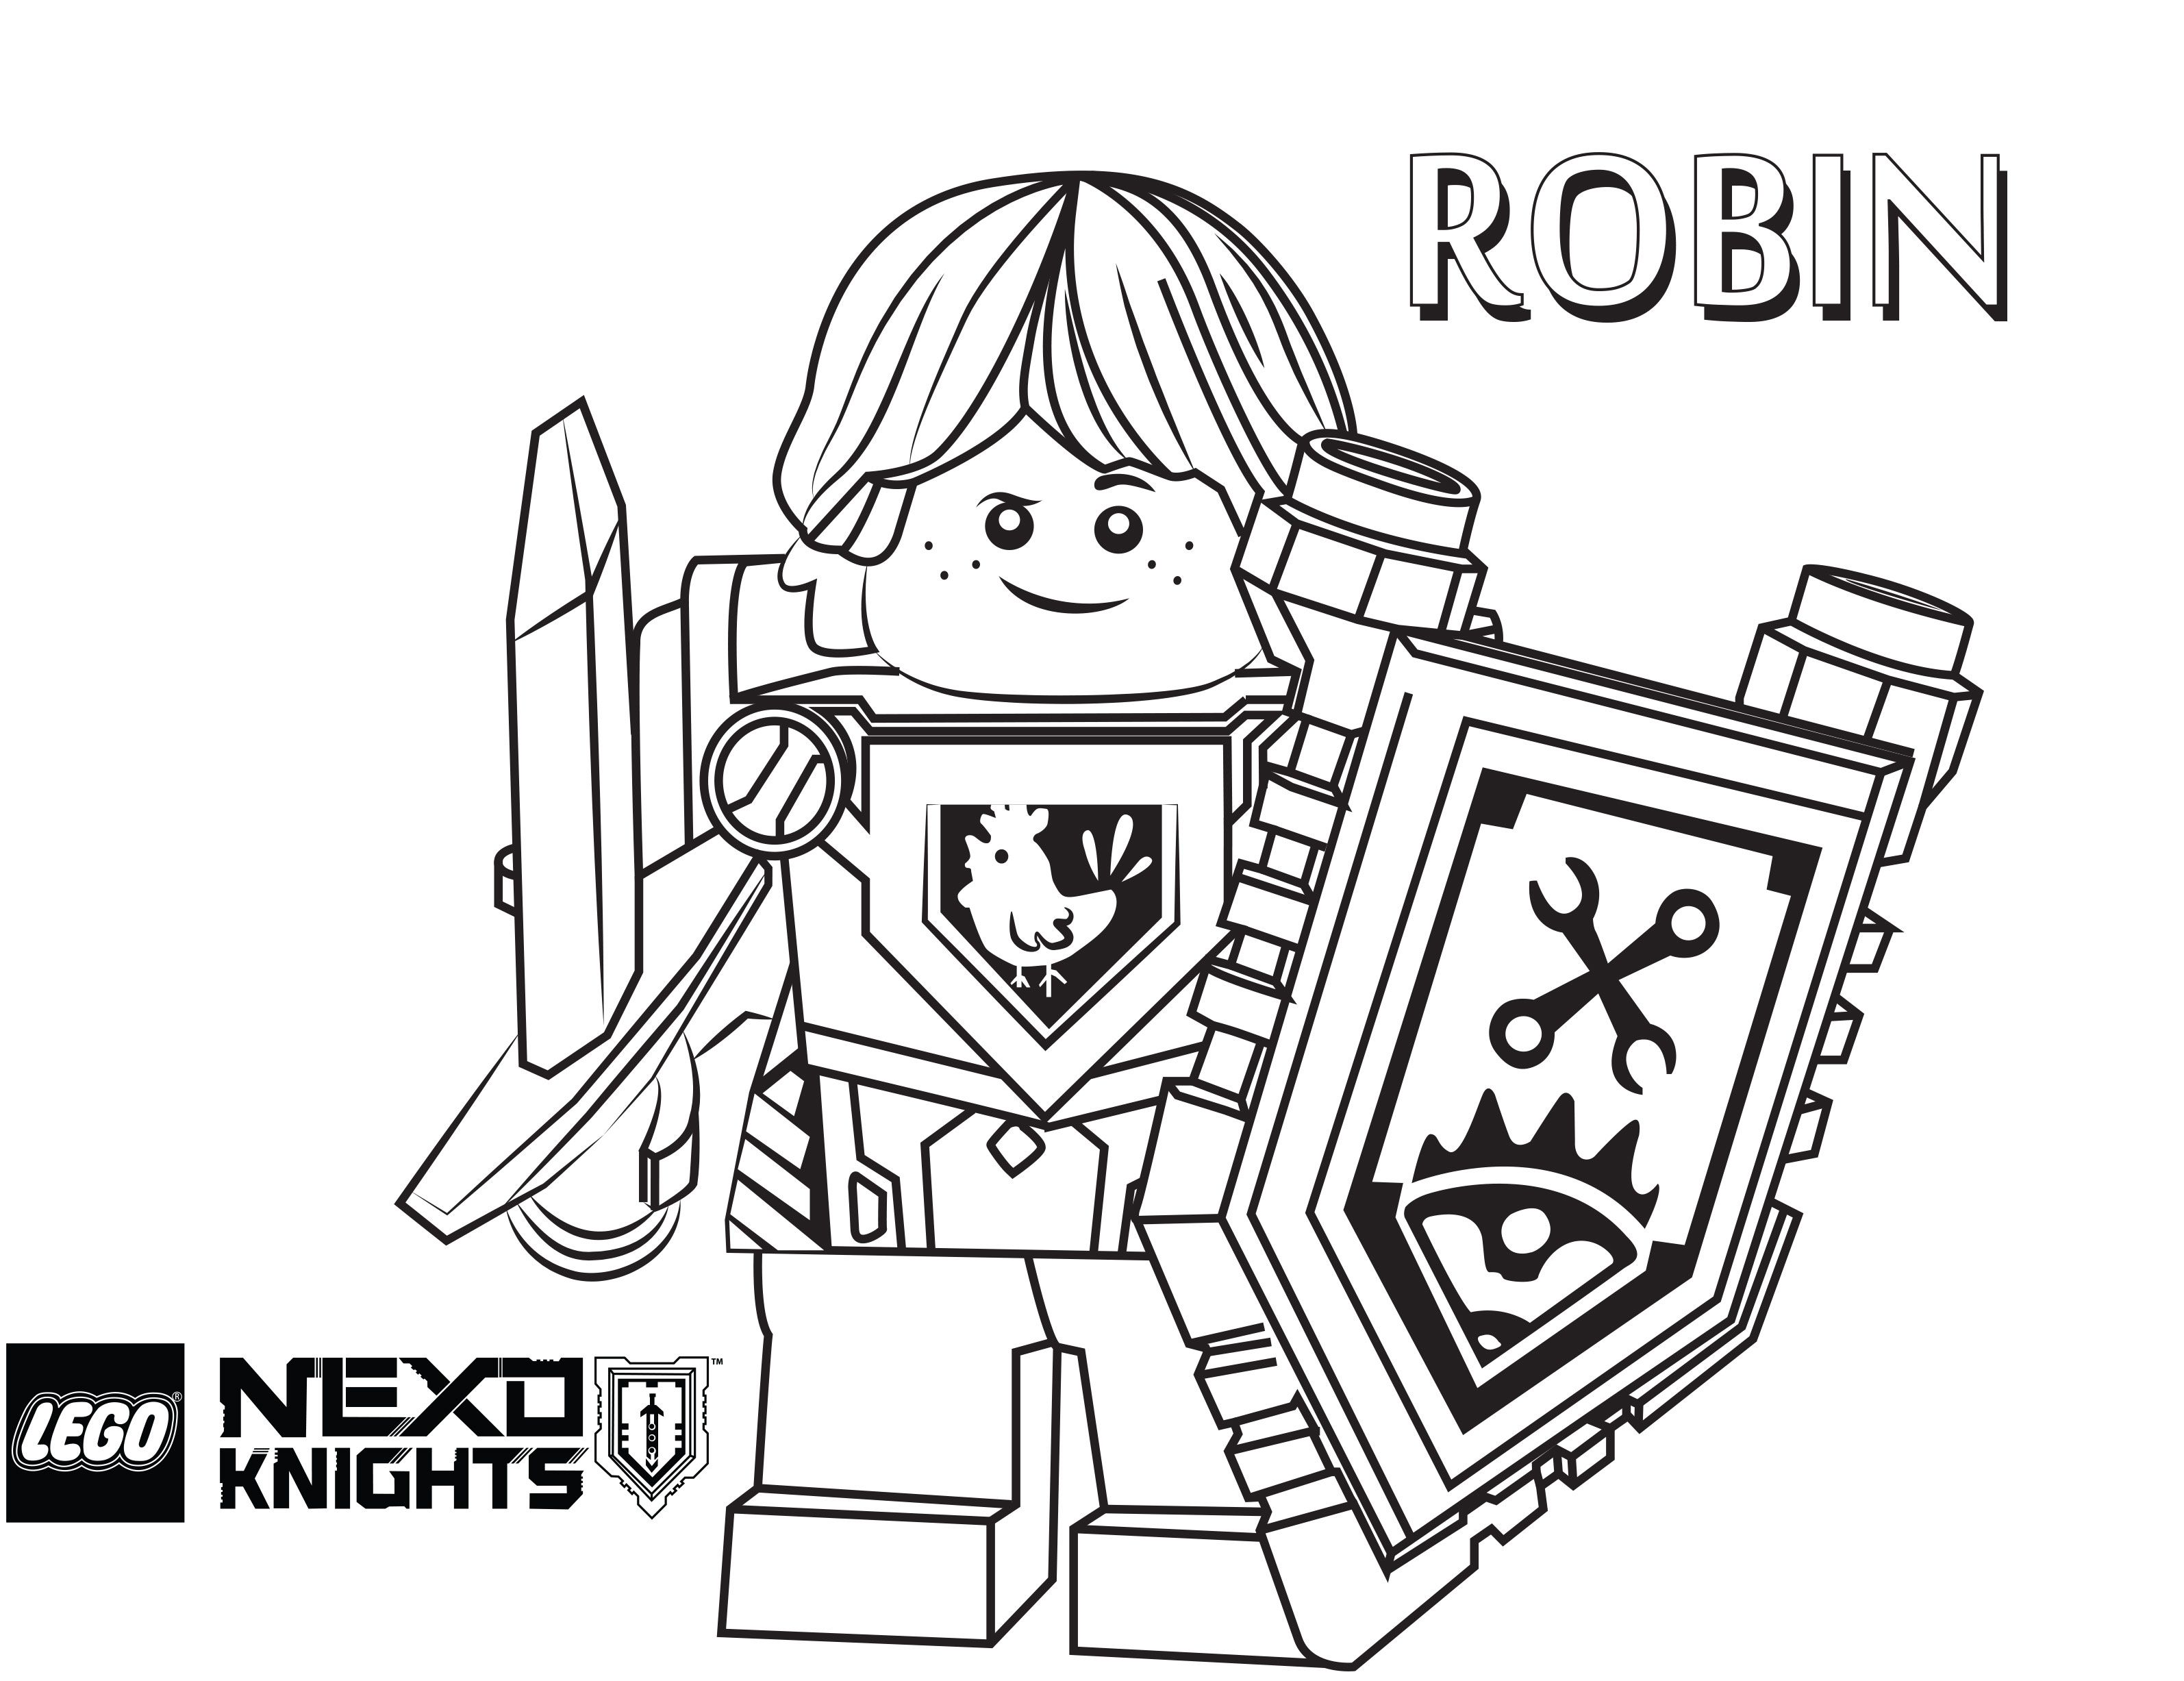 Coloring pages 321 - Lego Nexo Knights Coloring Pages Free Printable Lego Nexo Knights Color Sheets